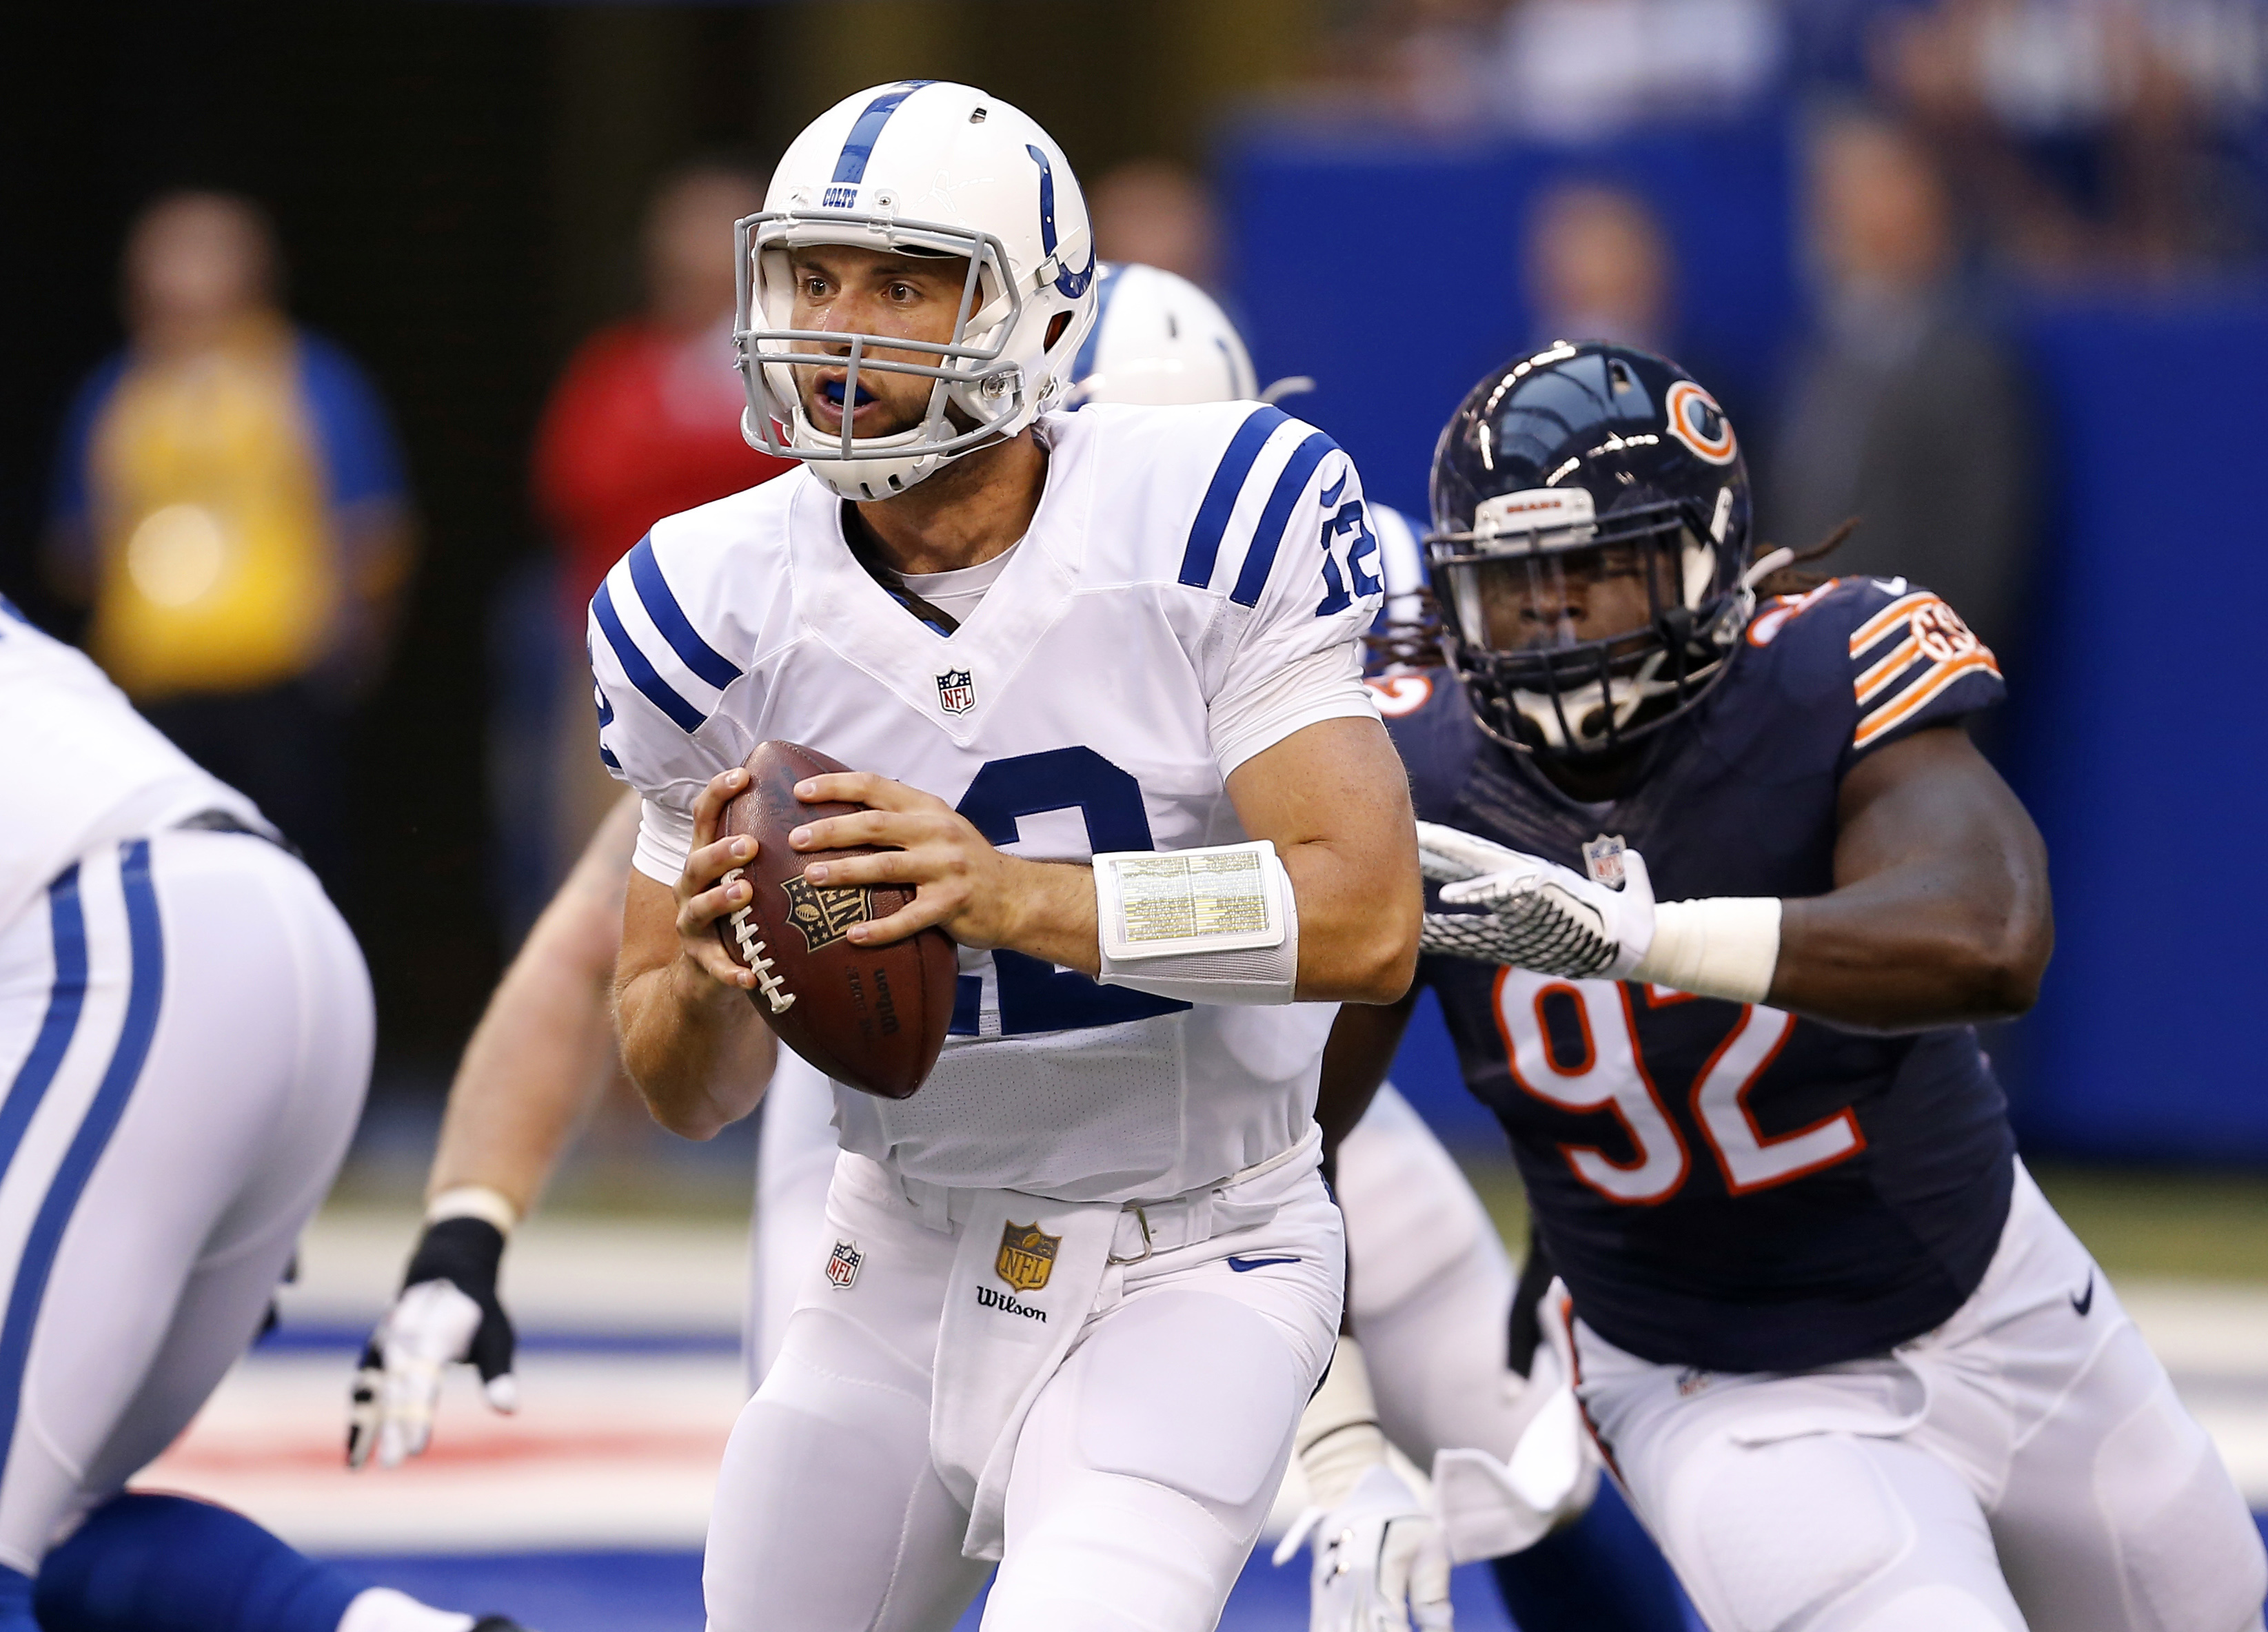 Indianapolis Colts quarterback Andrew Luck (12) is chased by Chicago Bears defensive end Pernell McPhee (92) during the first half of an NFL preseason football game in Indianapolis, Saturday, Aug. 22, 2015.  (AP Photo/Sam Riche)